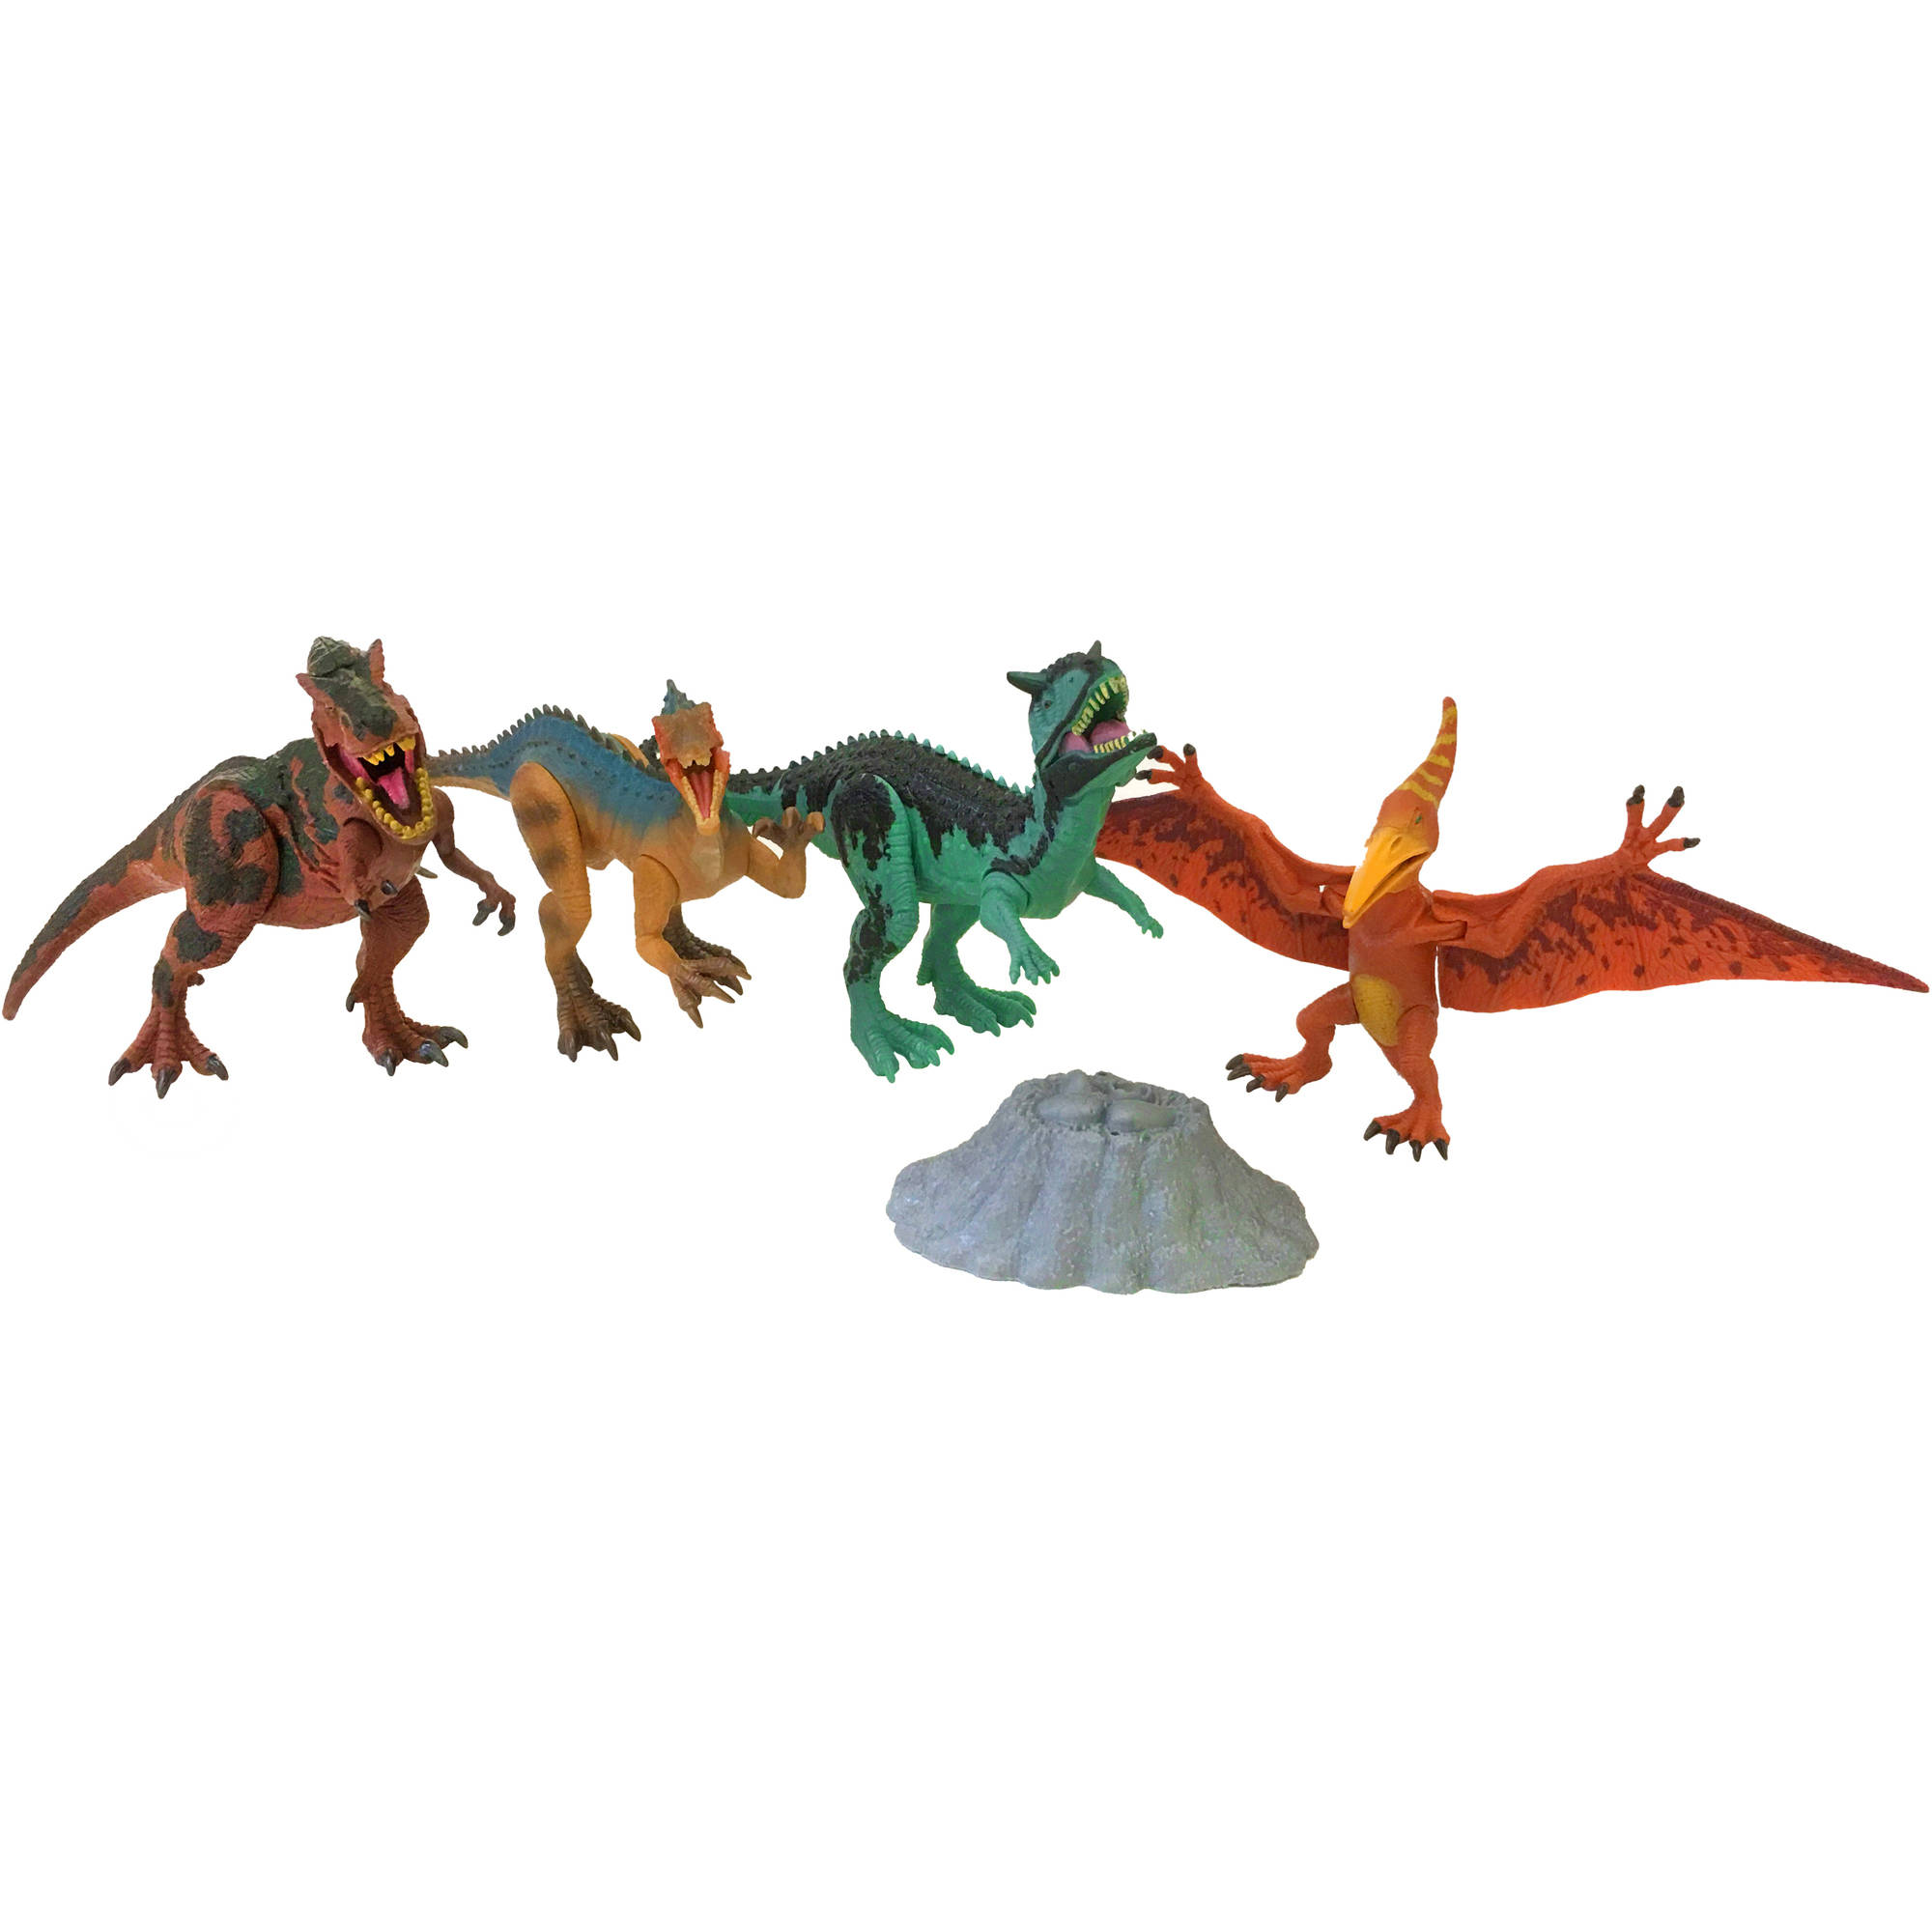 Museum Quality Articulated Dinosaurs by